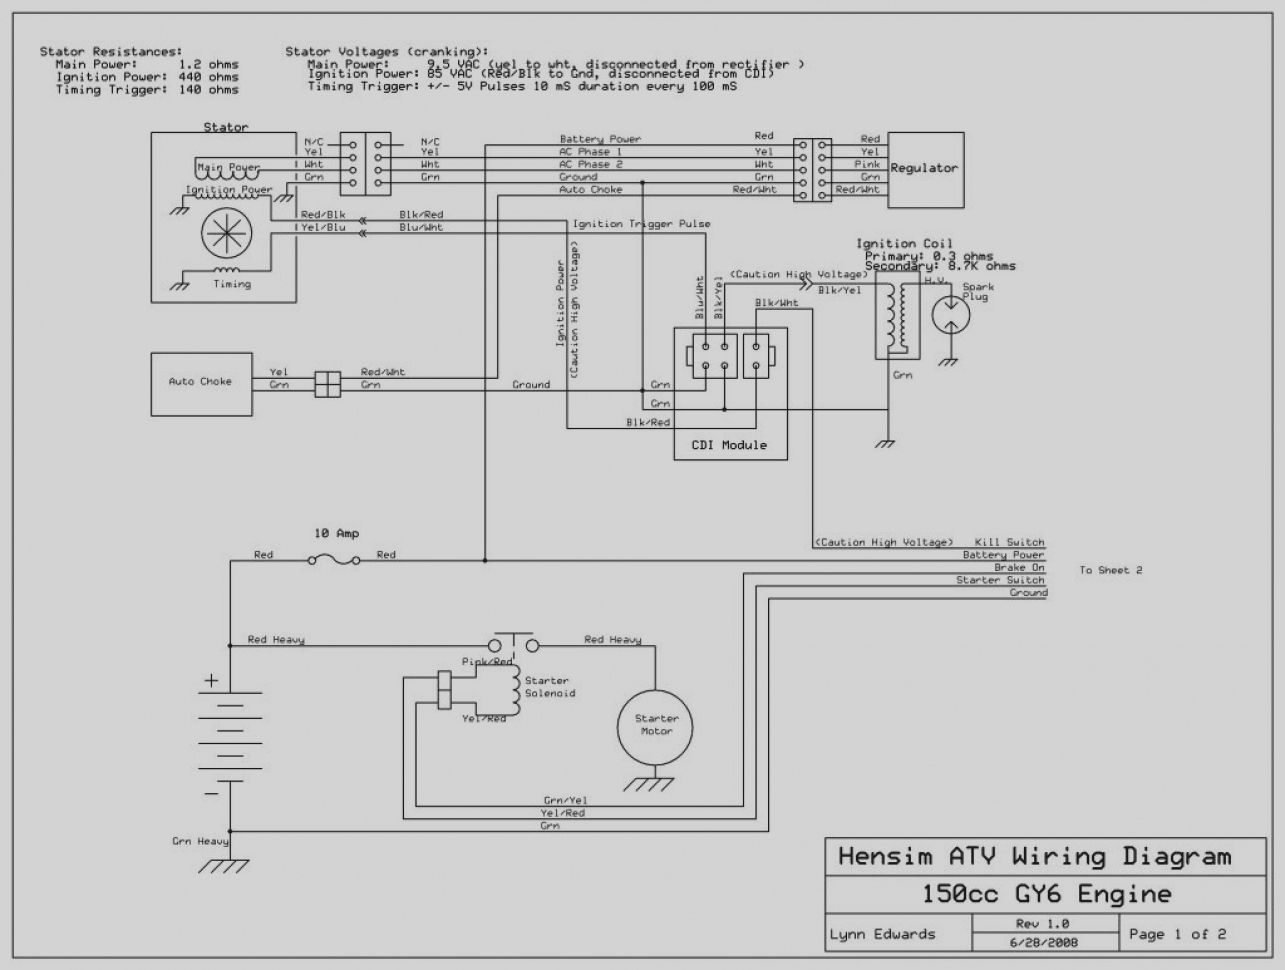 [DIAGRAM_38DE]  Great Of Honda Atv Ignition Switch Wiring Diagram JVC 150 Lost Key  Eliminate All Together But | Electrical diagram, Boat wiring, Electrical  circuit diagram | 2007 Honda Rubicon Wiring Diagram |  | Pinterest